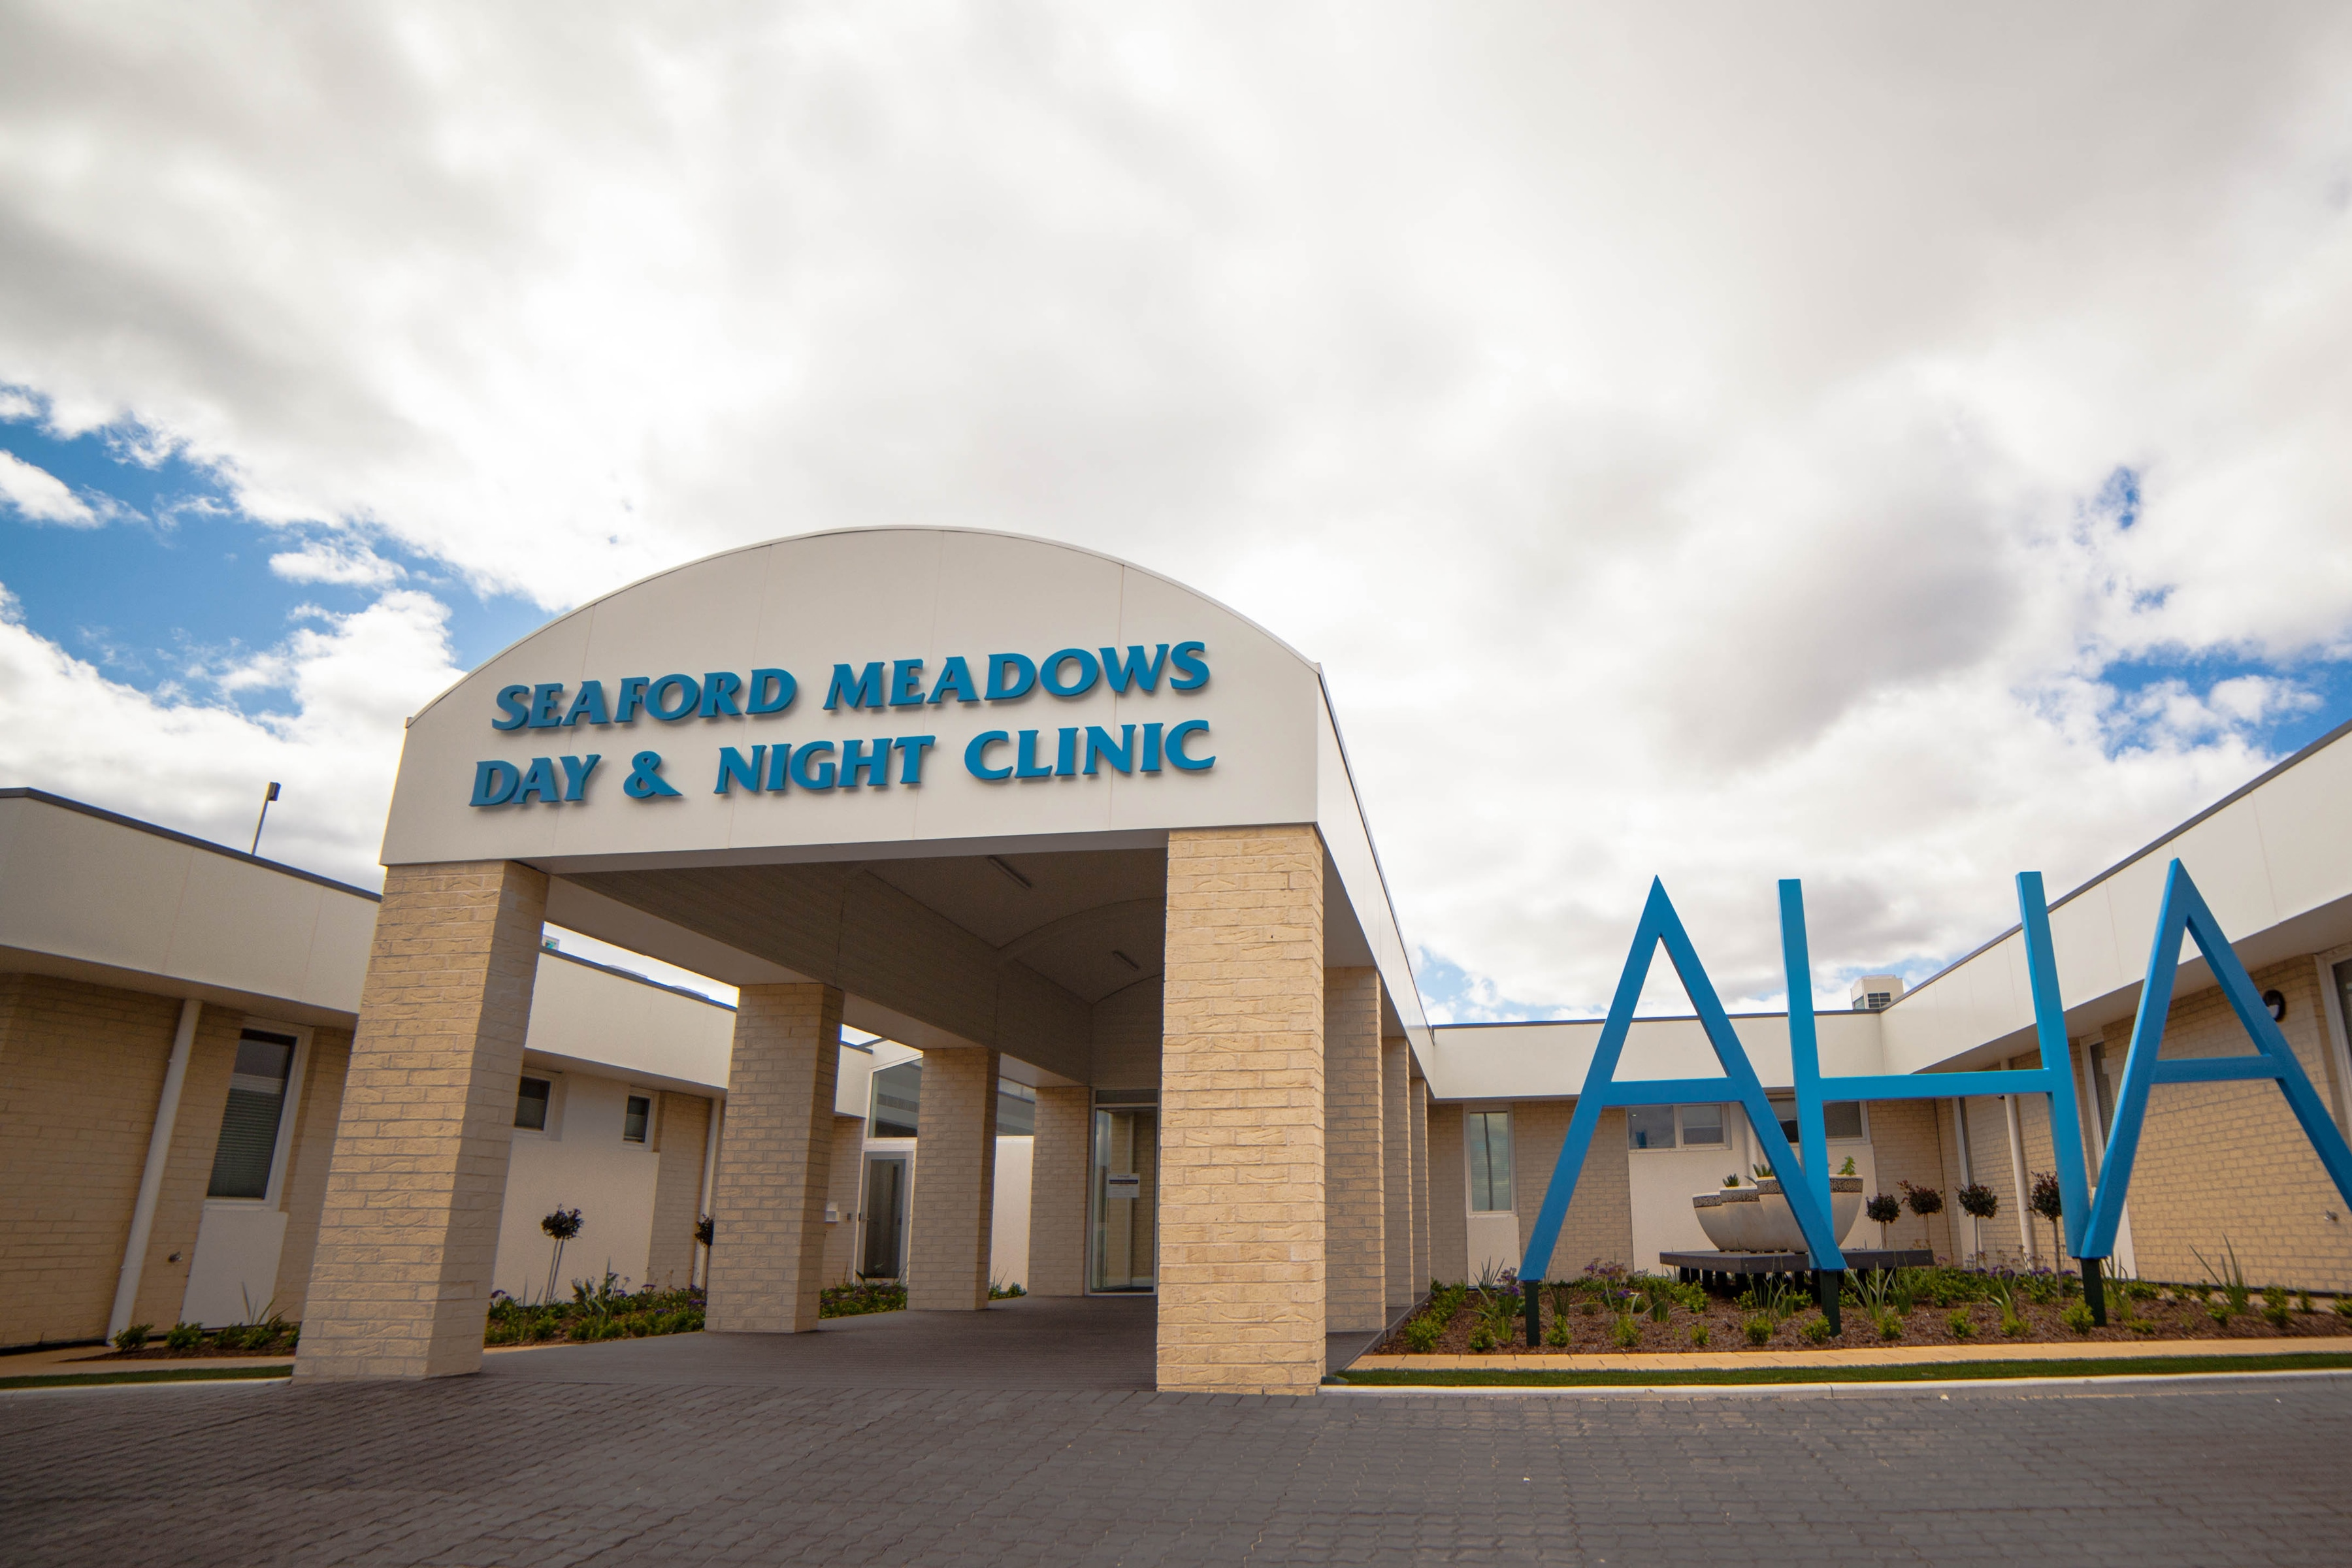 Seaford Day And Night Clinic - Pic 2